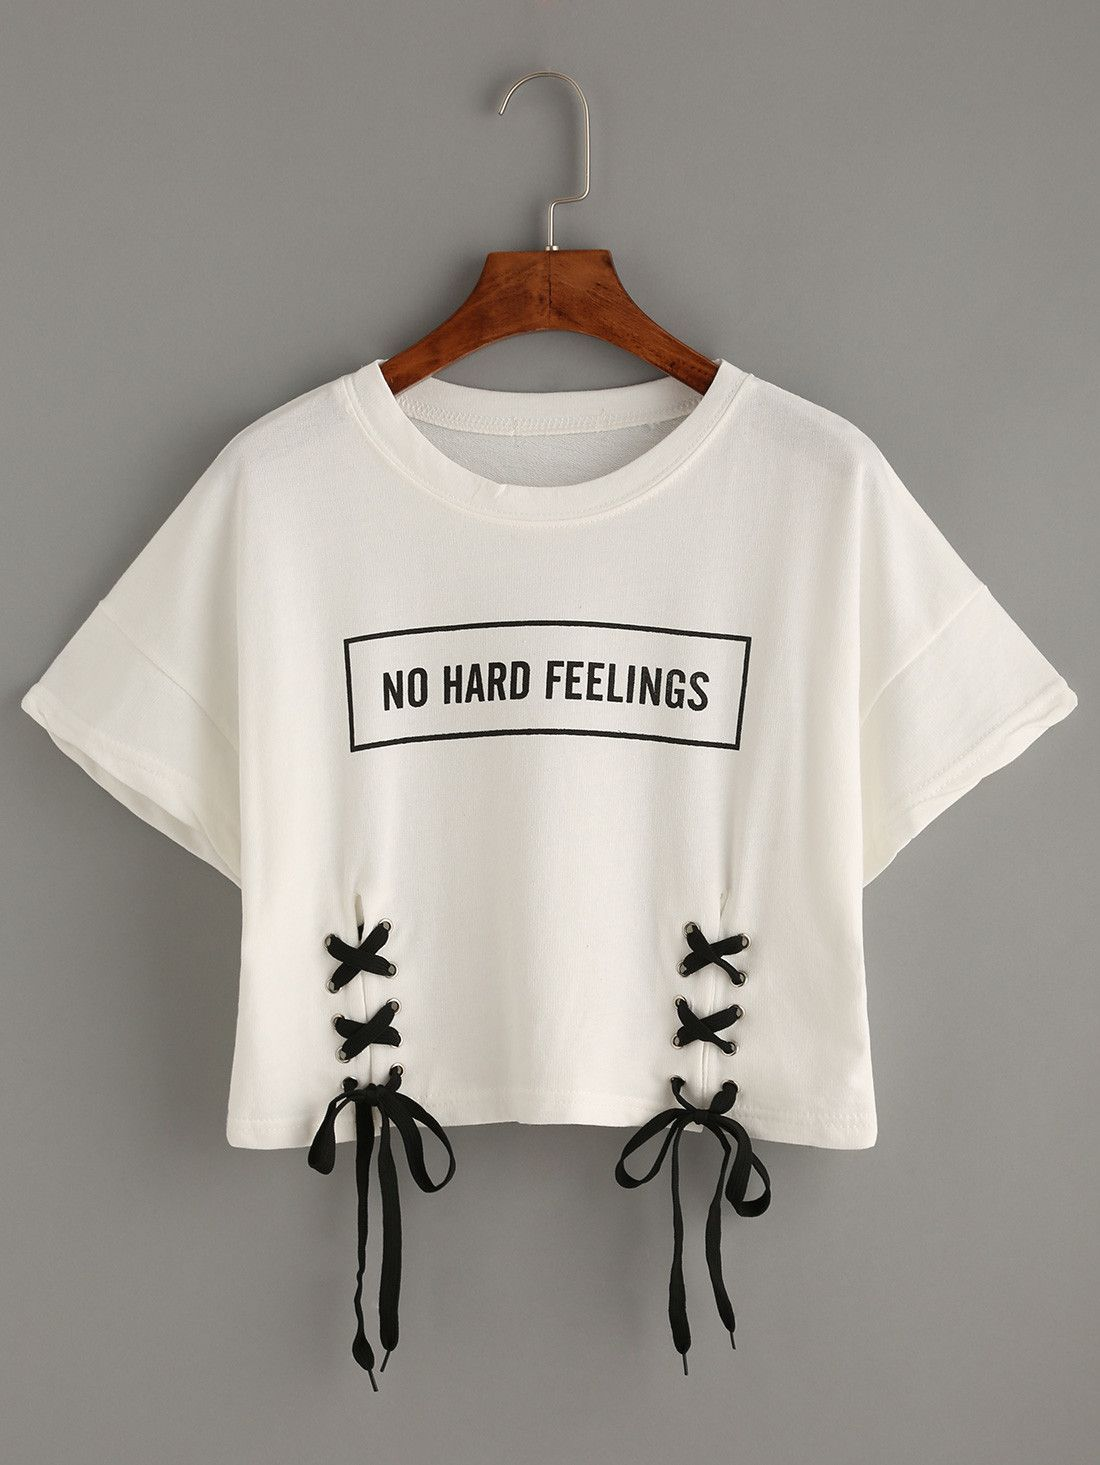 7dc881e3f987f6 White Printed Short Sleeve Cotton Women s Crop Top